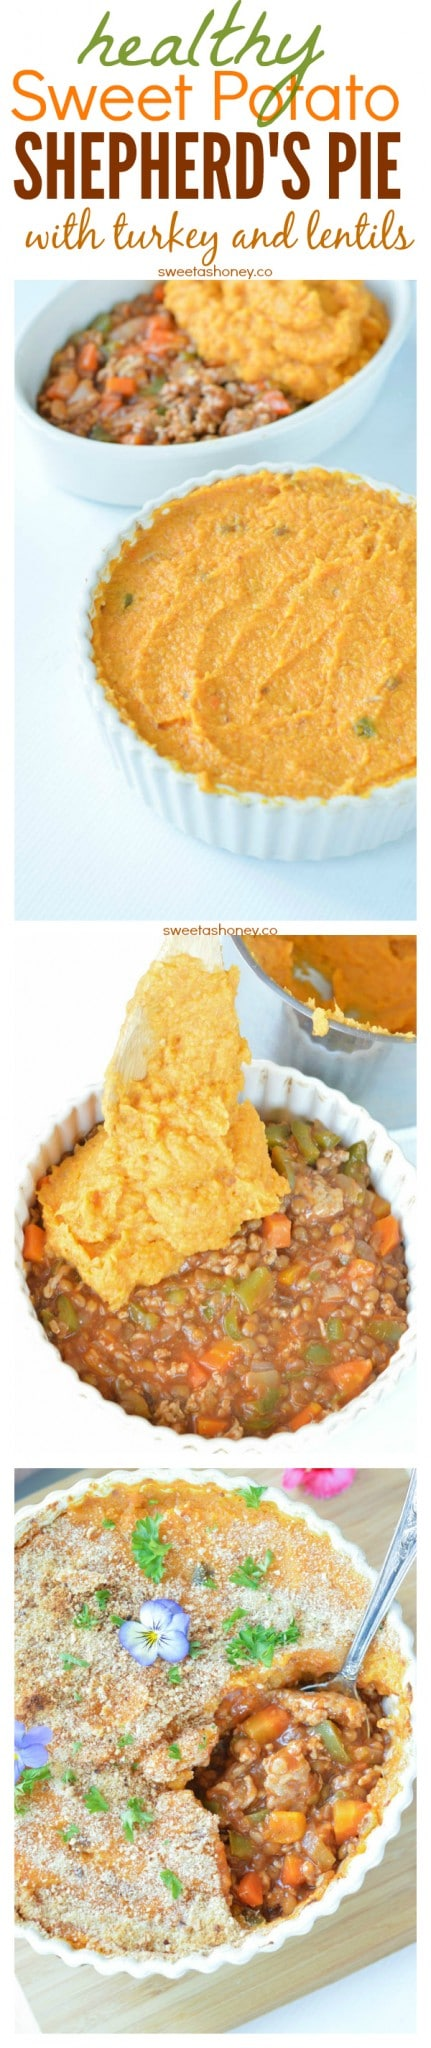 Healthy Sweet Potatoes Shepherd's Pie